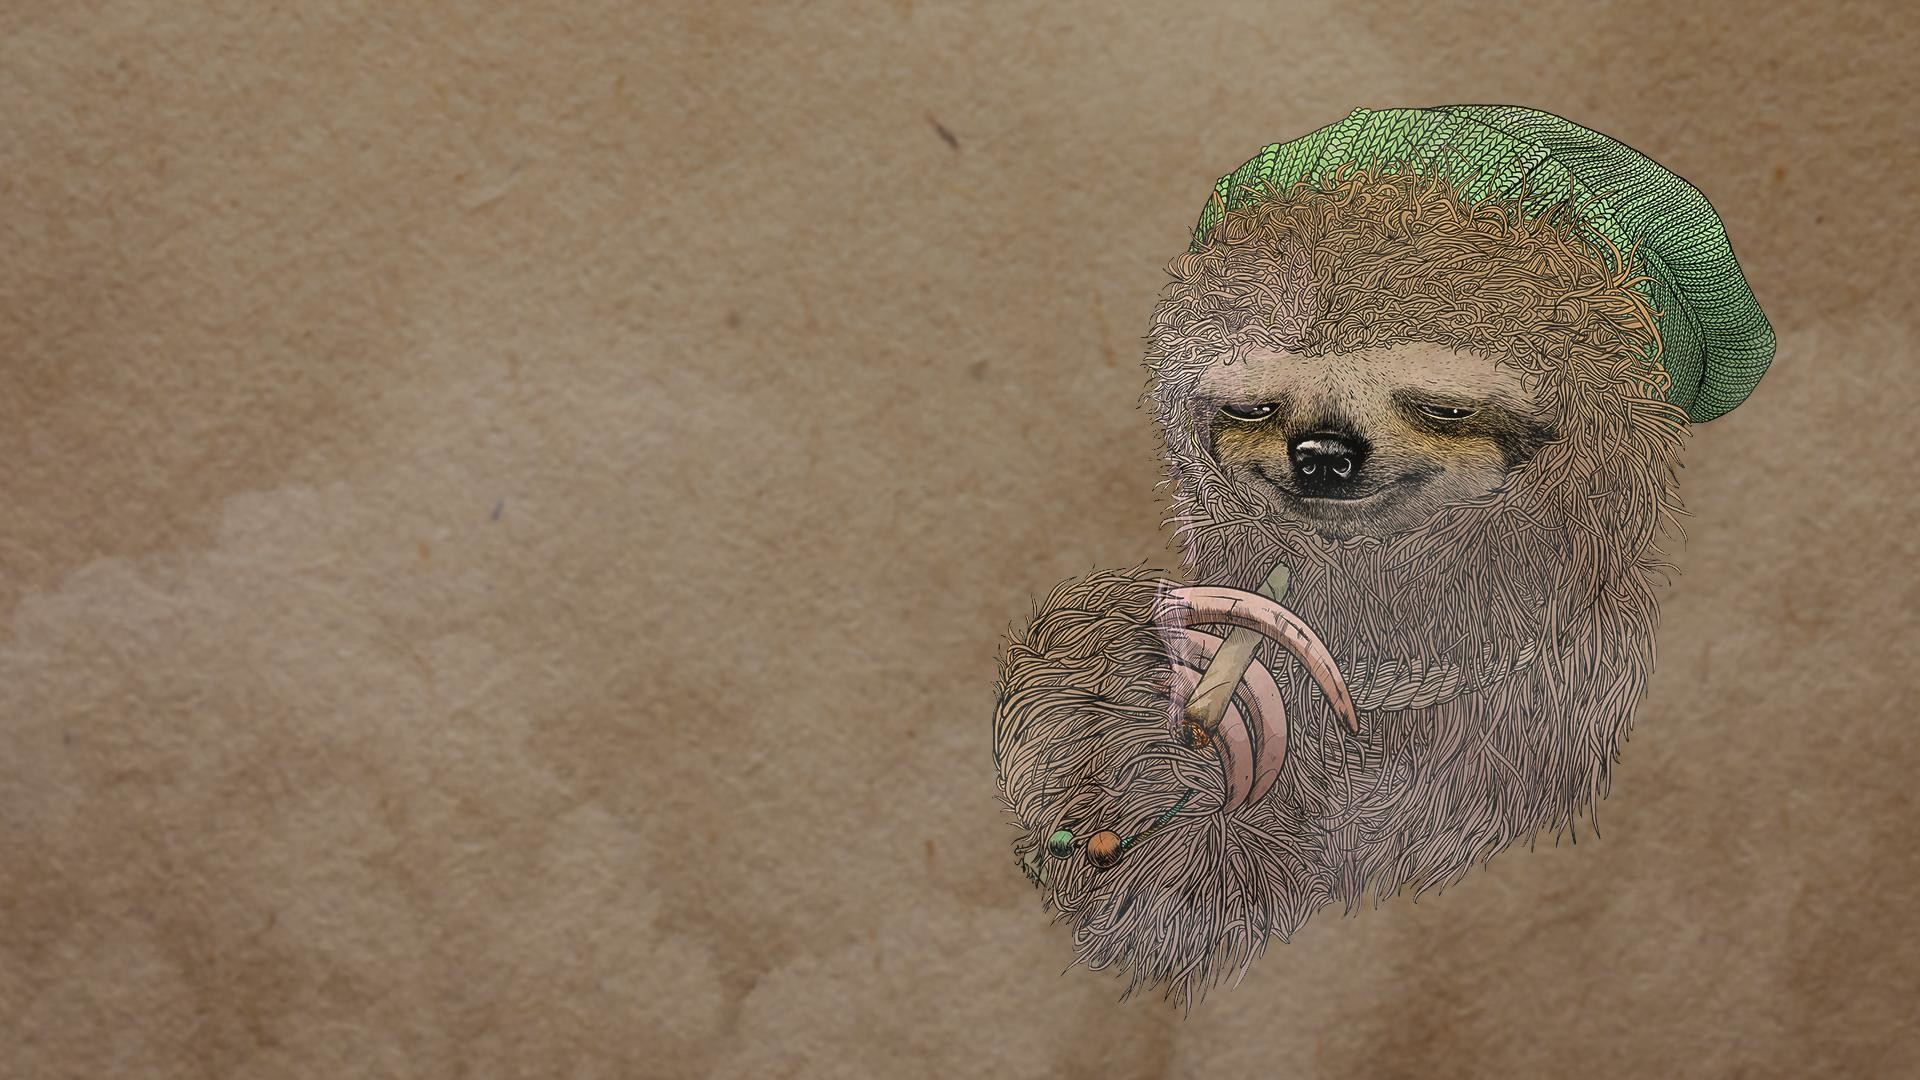 I made a wallpaper from the stoner sloth image.